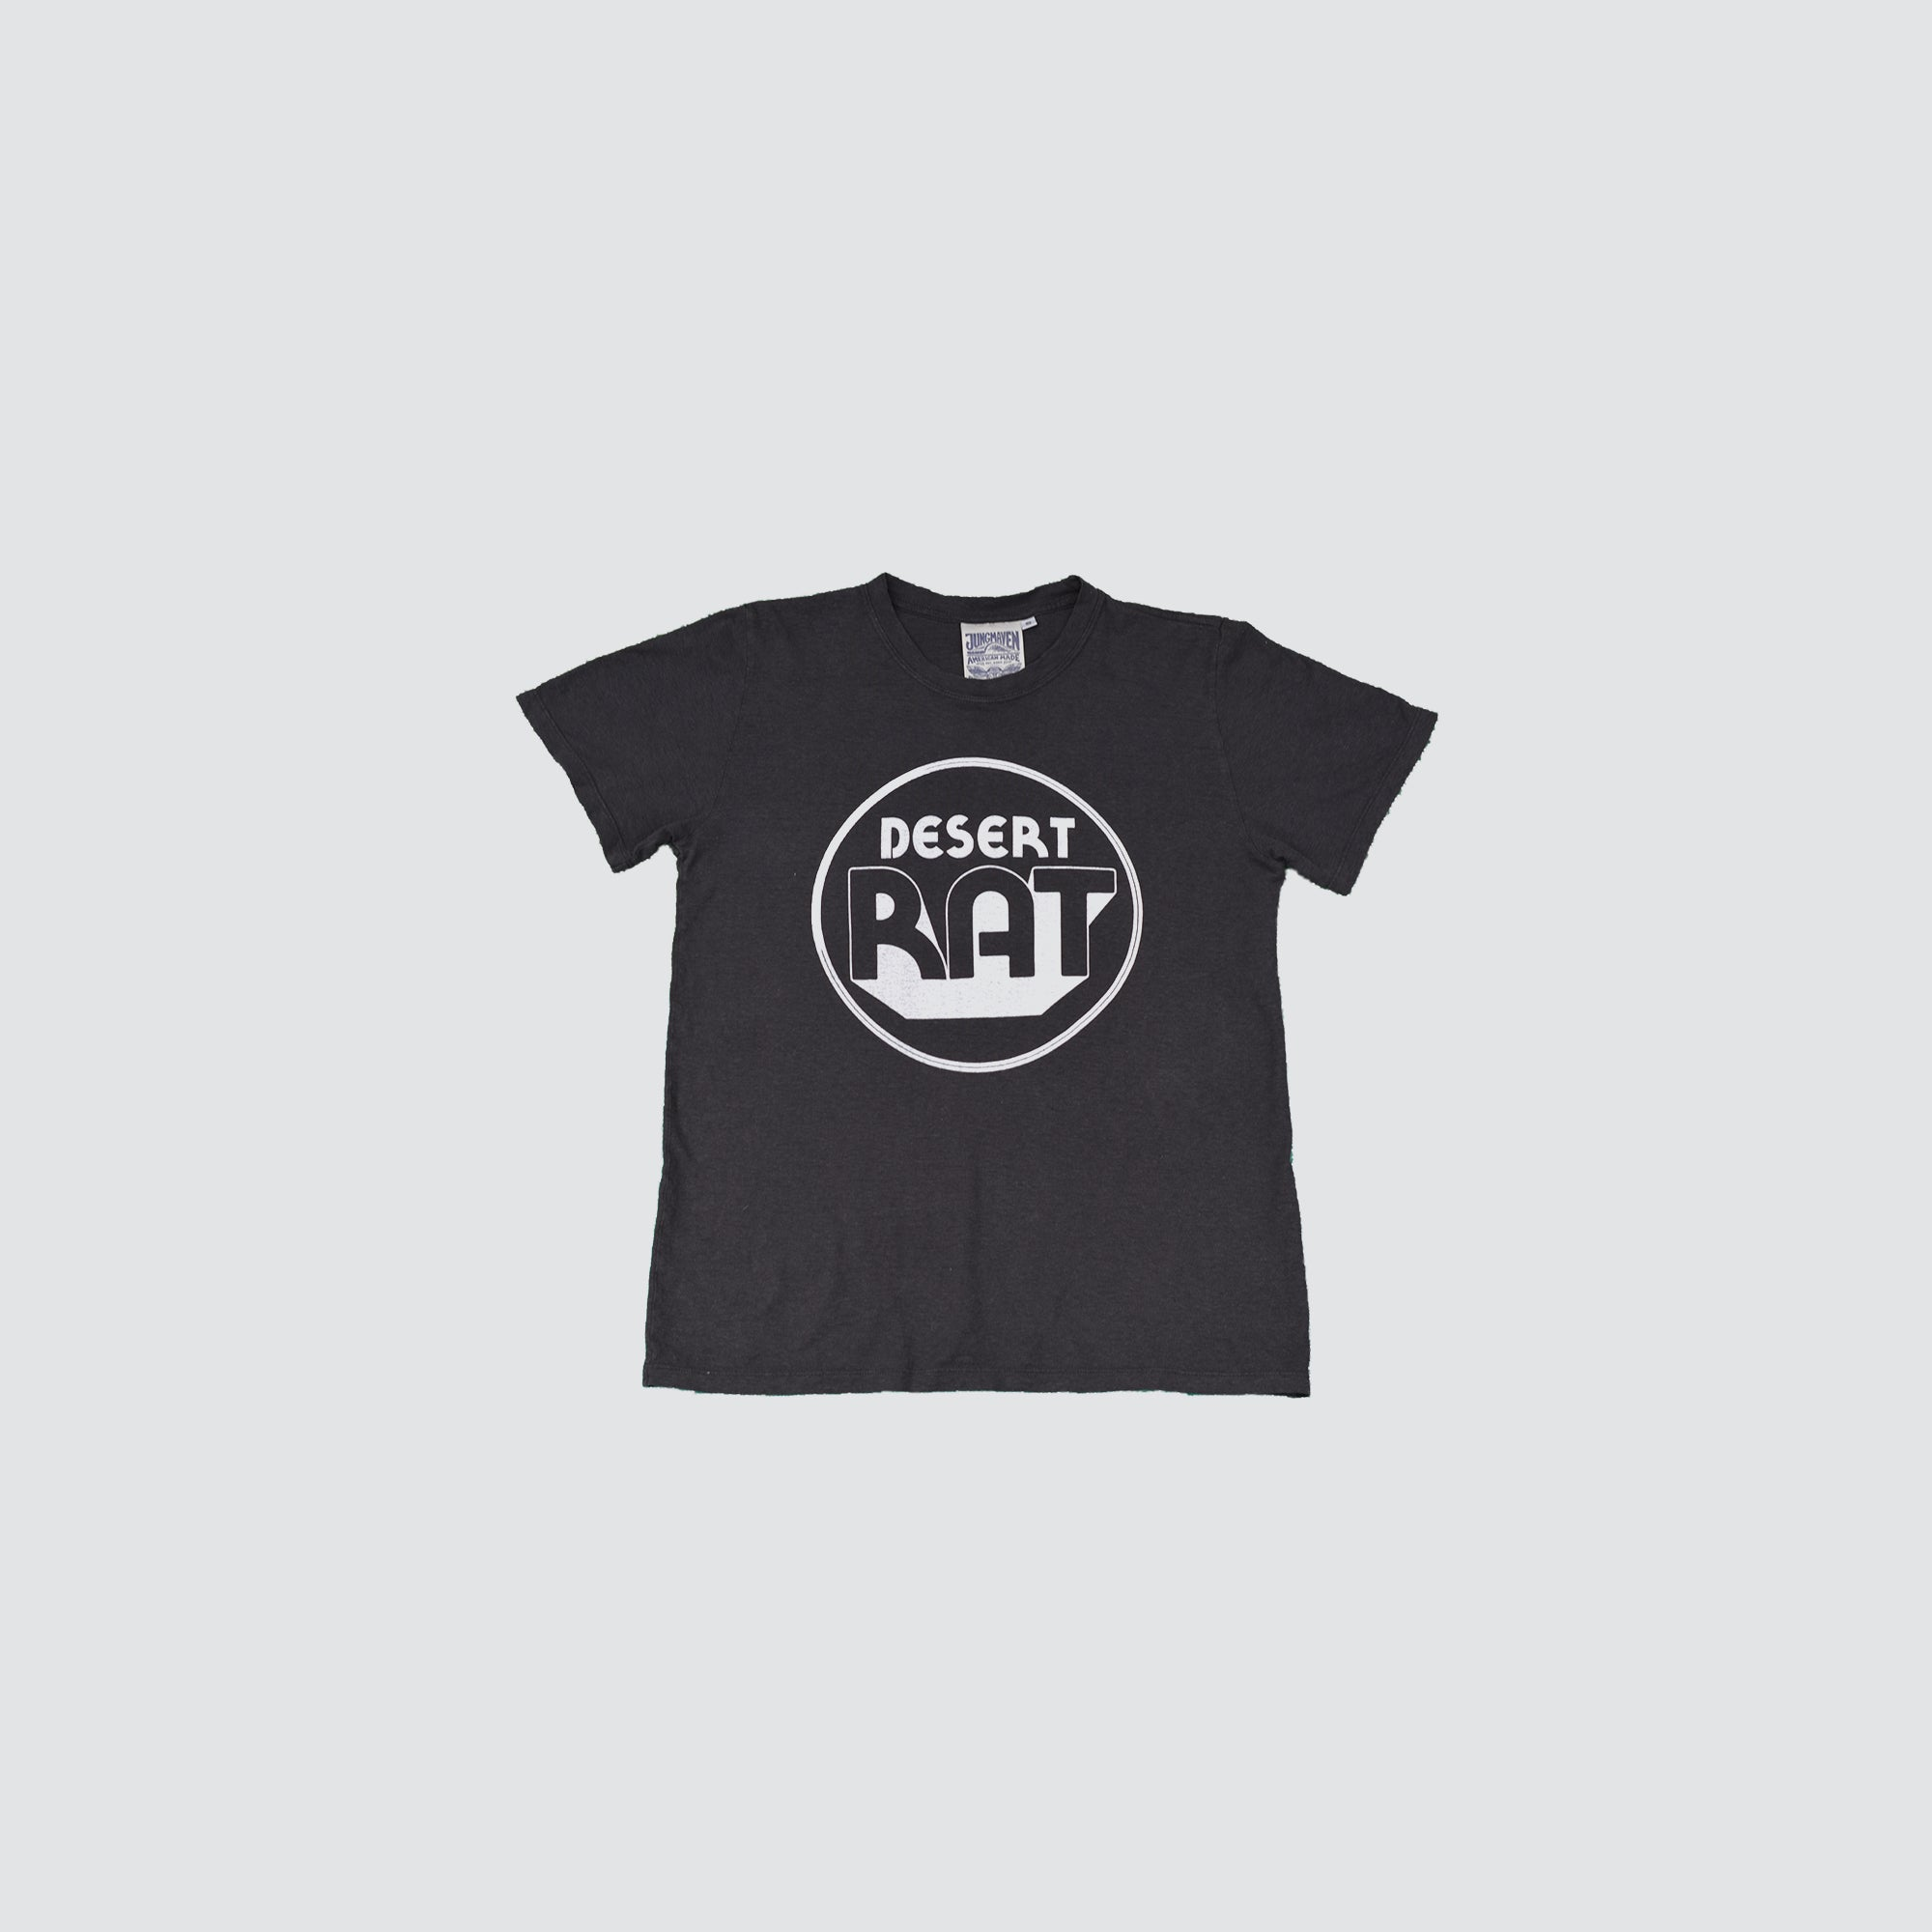 DESERT RAT // T-SHIRT // WASHED BLACK